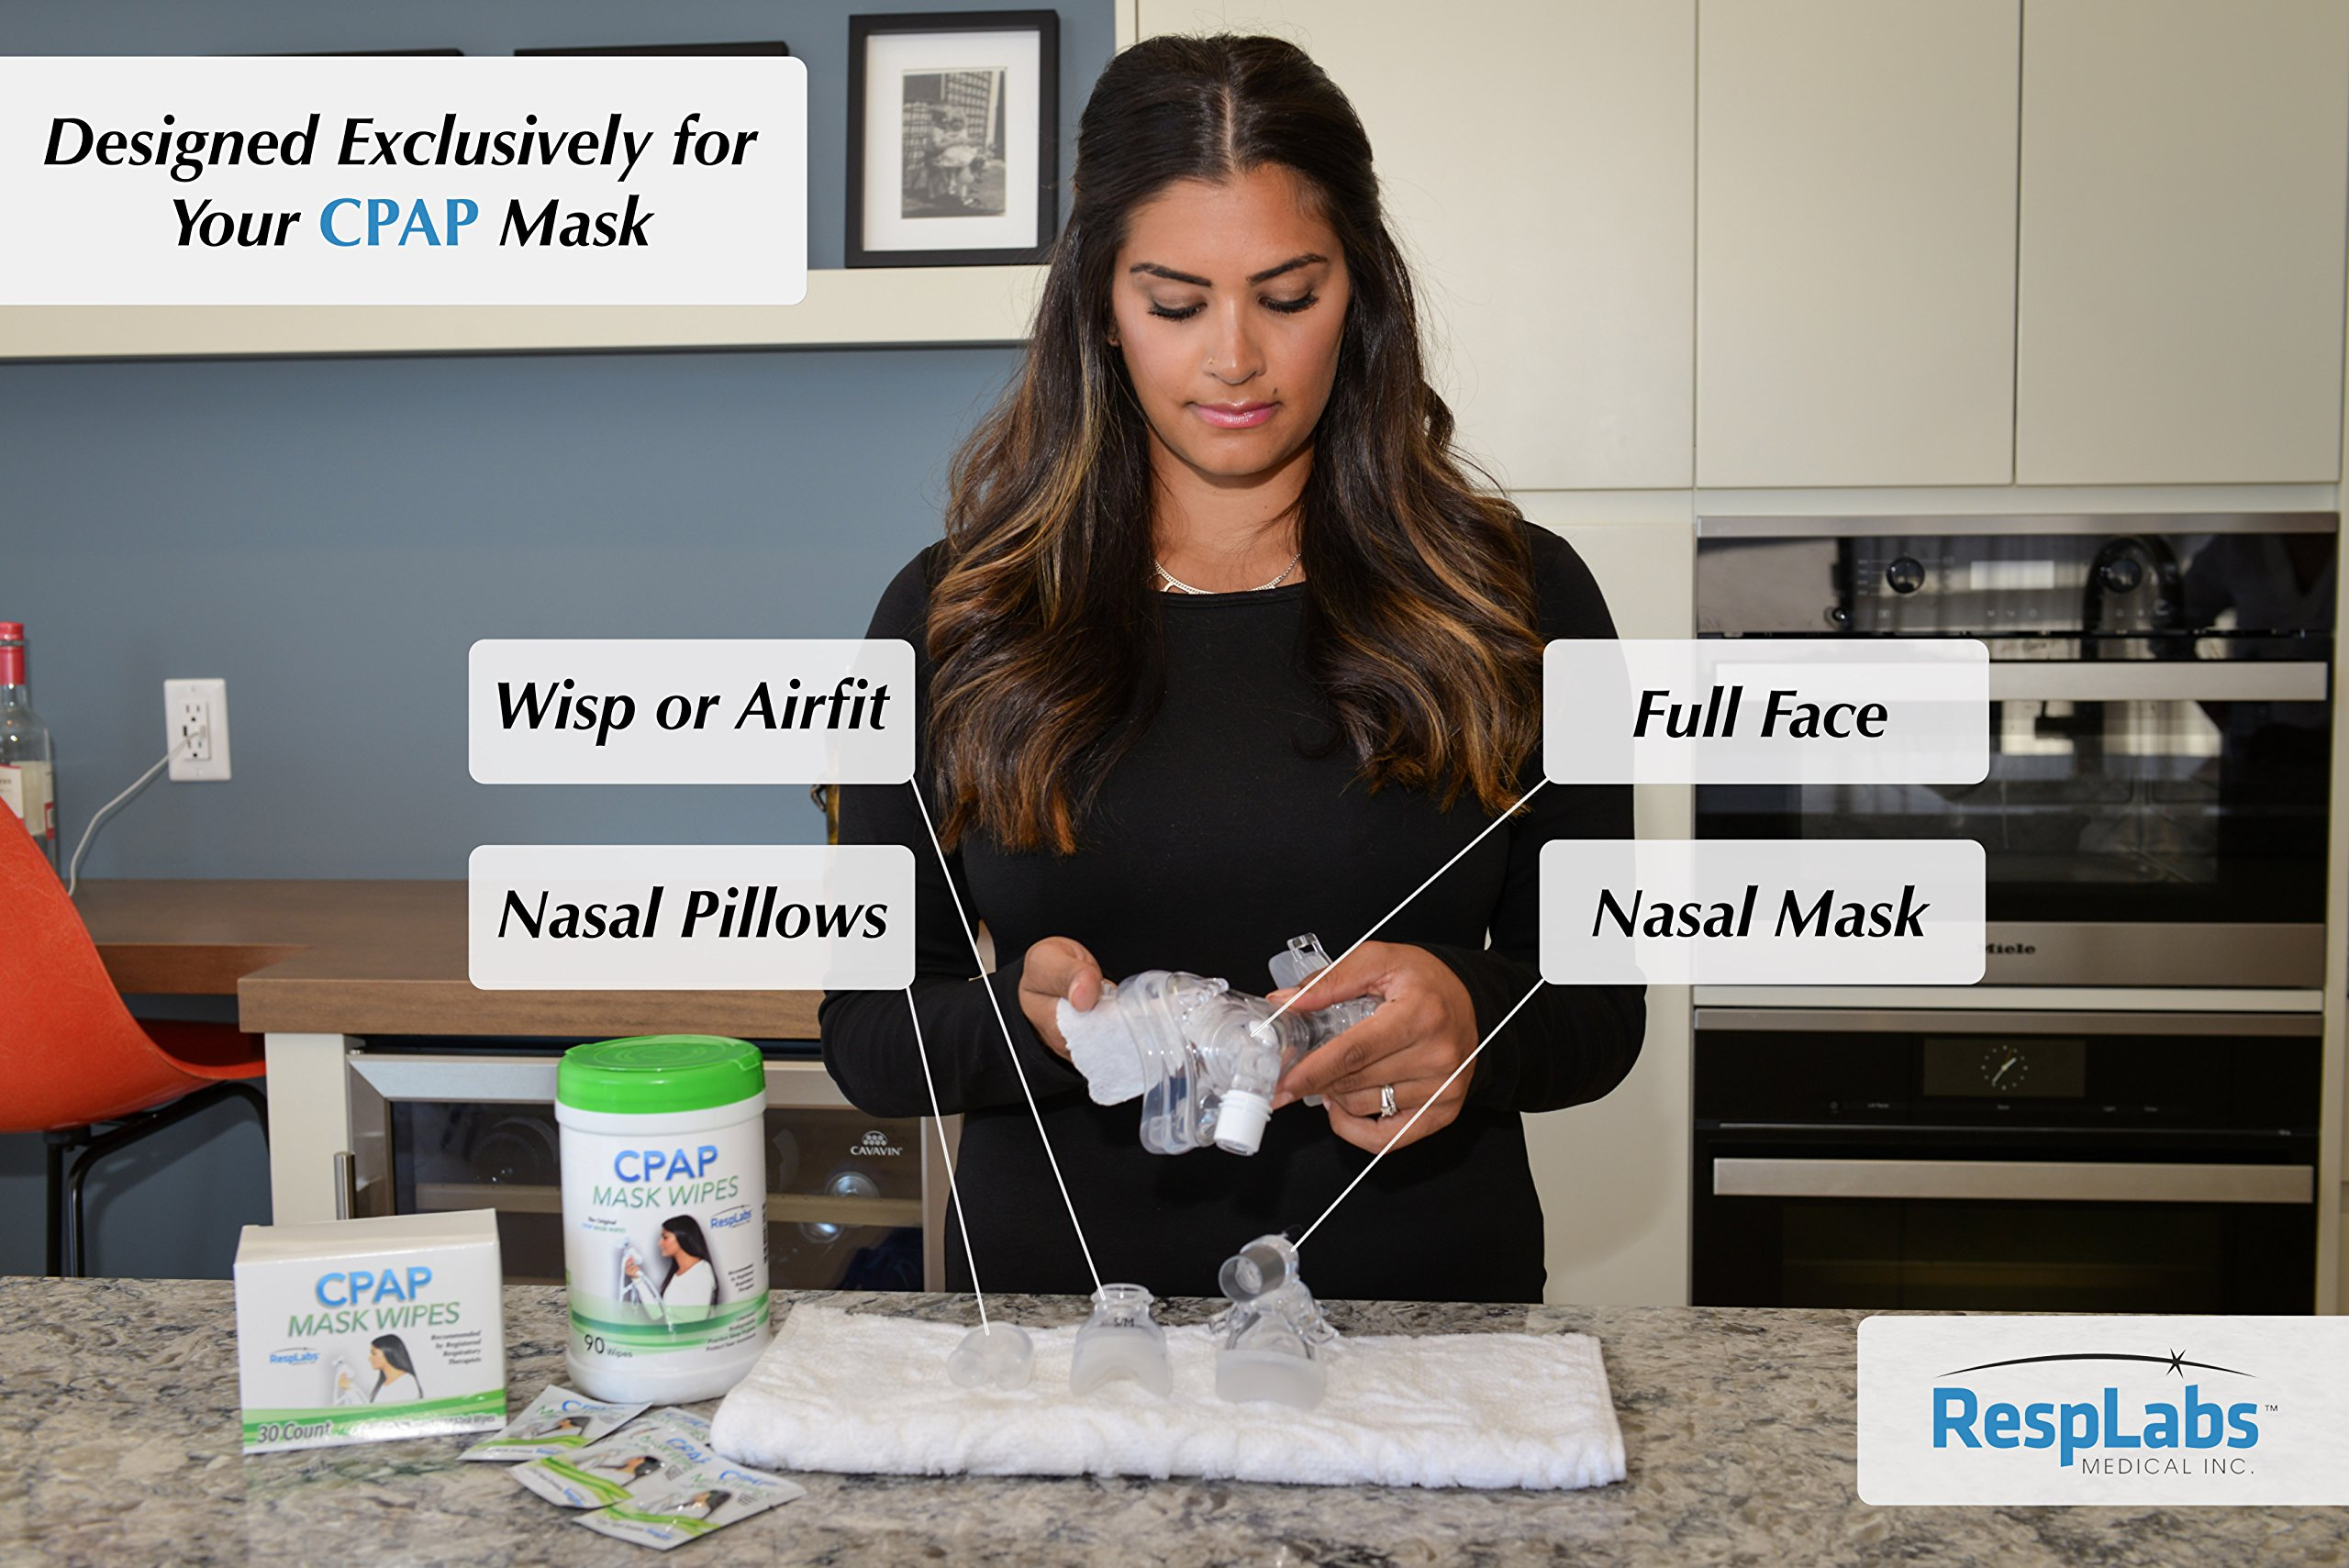 CPAP Mask Cleaning Wipes - 90 Pack + Travel Wipe | The Original Unscented Cleaner and Sanitizer for Masks | Equipment & Machine Supplies by RespLabs by RespLabs Medical Inc. (Image #3)